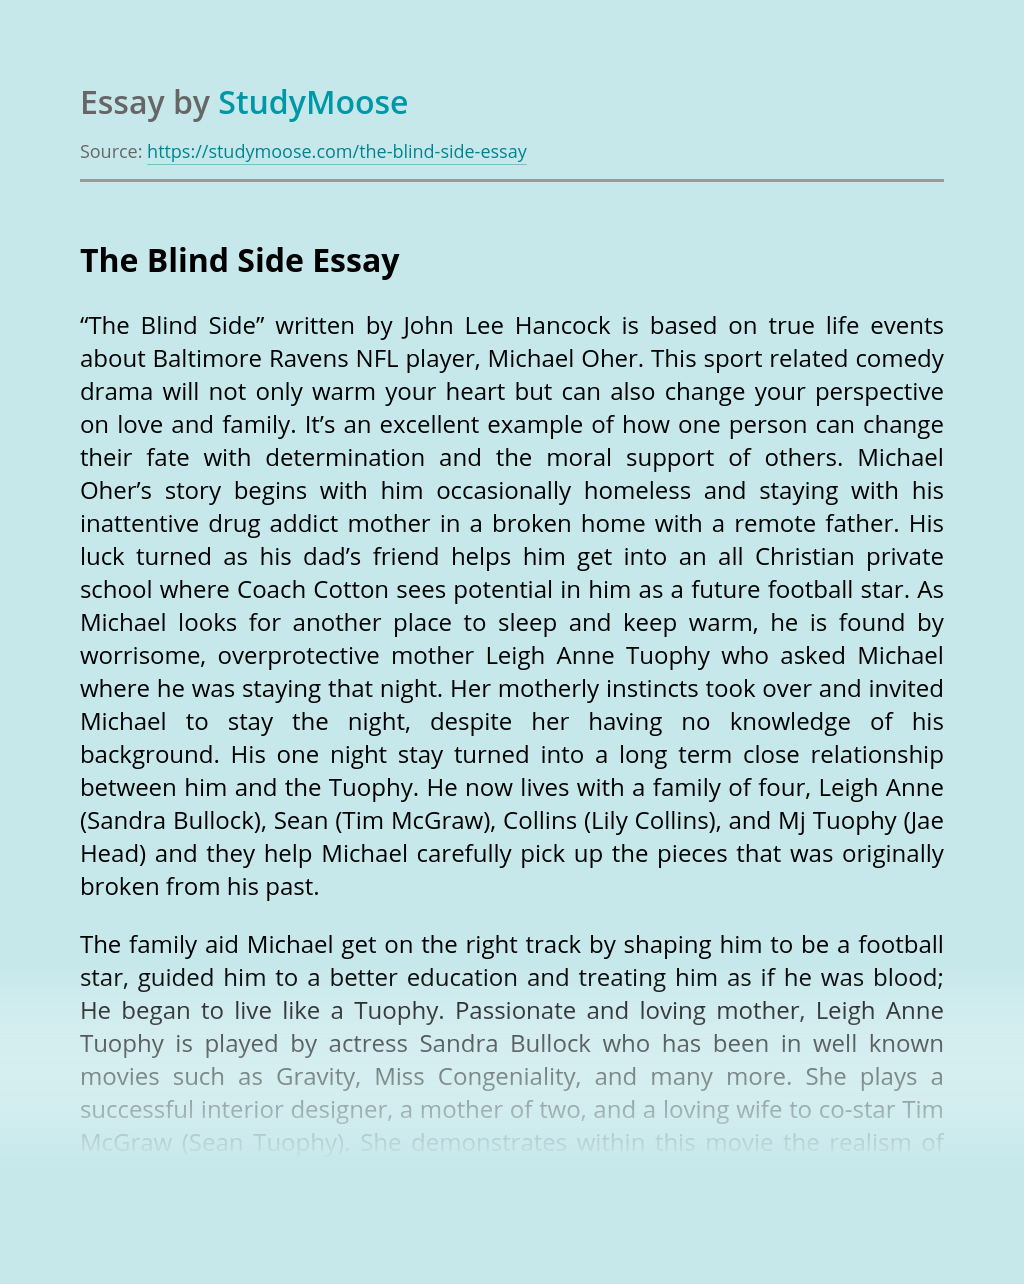 The Blind Side: Real-Life Background